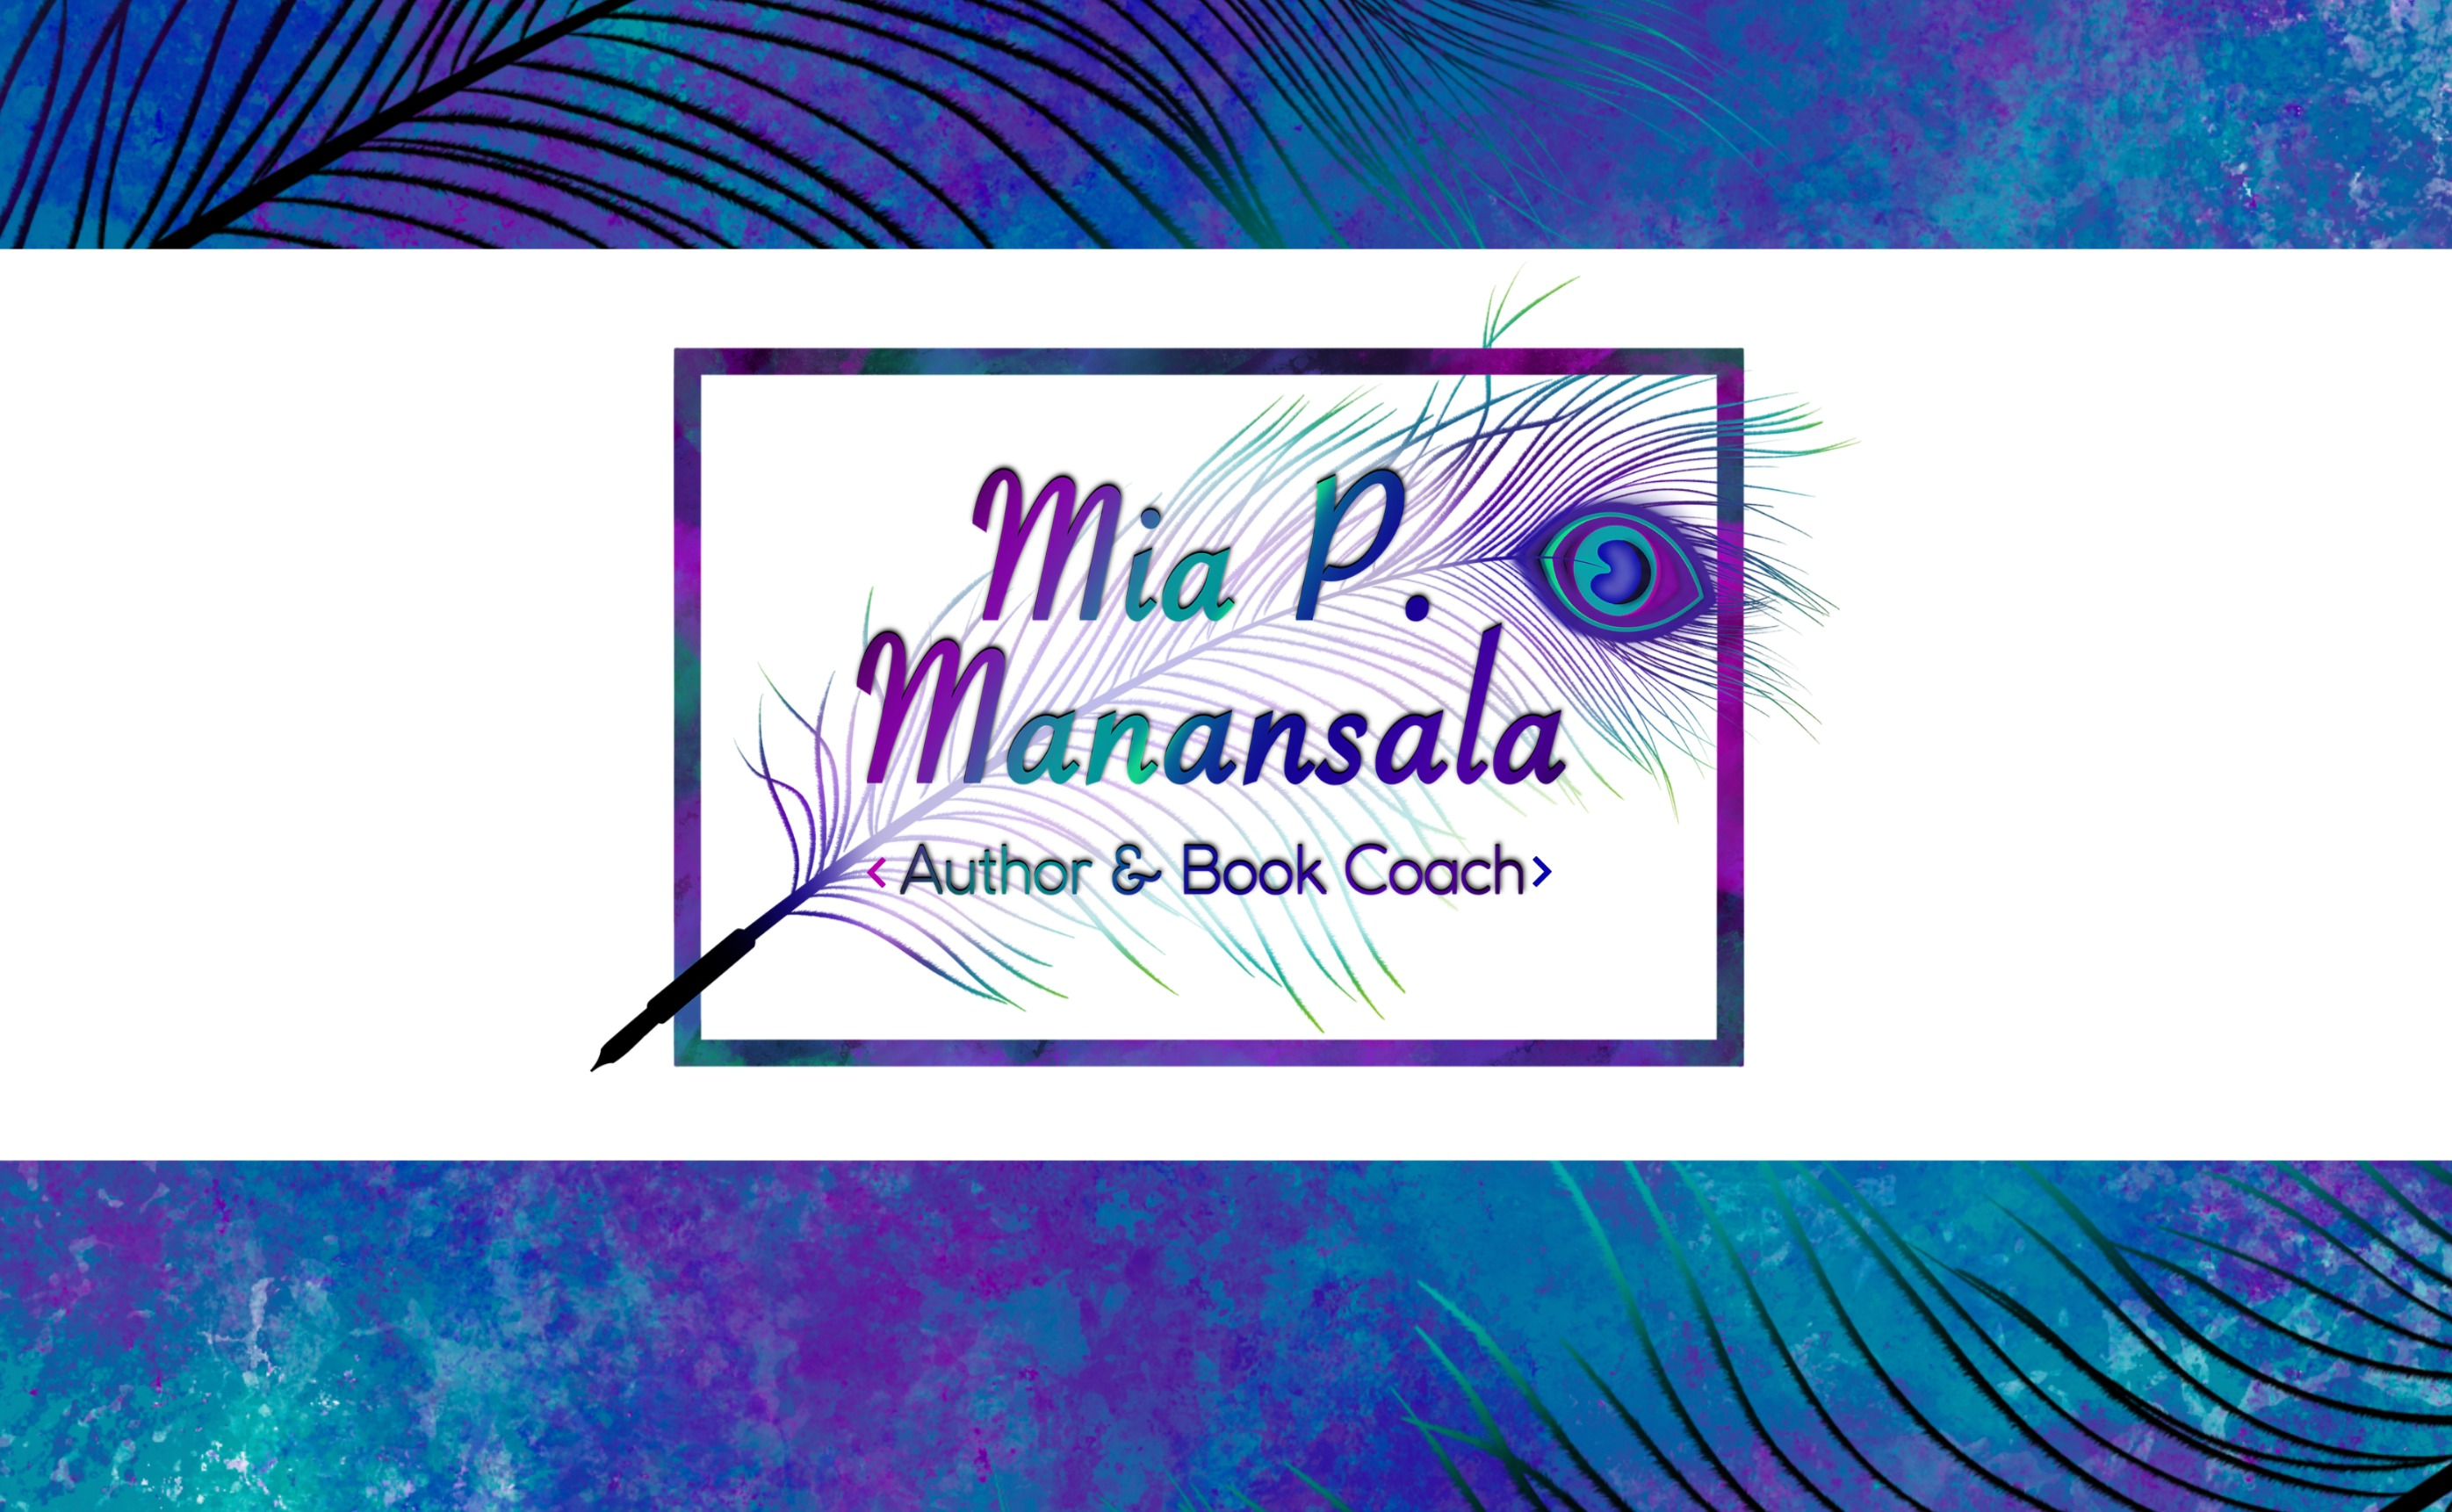 Mia P. Manansala | Author & Book Coach